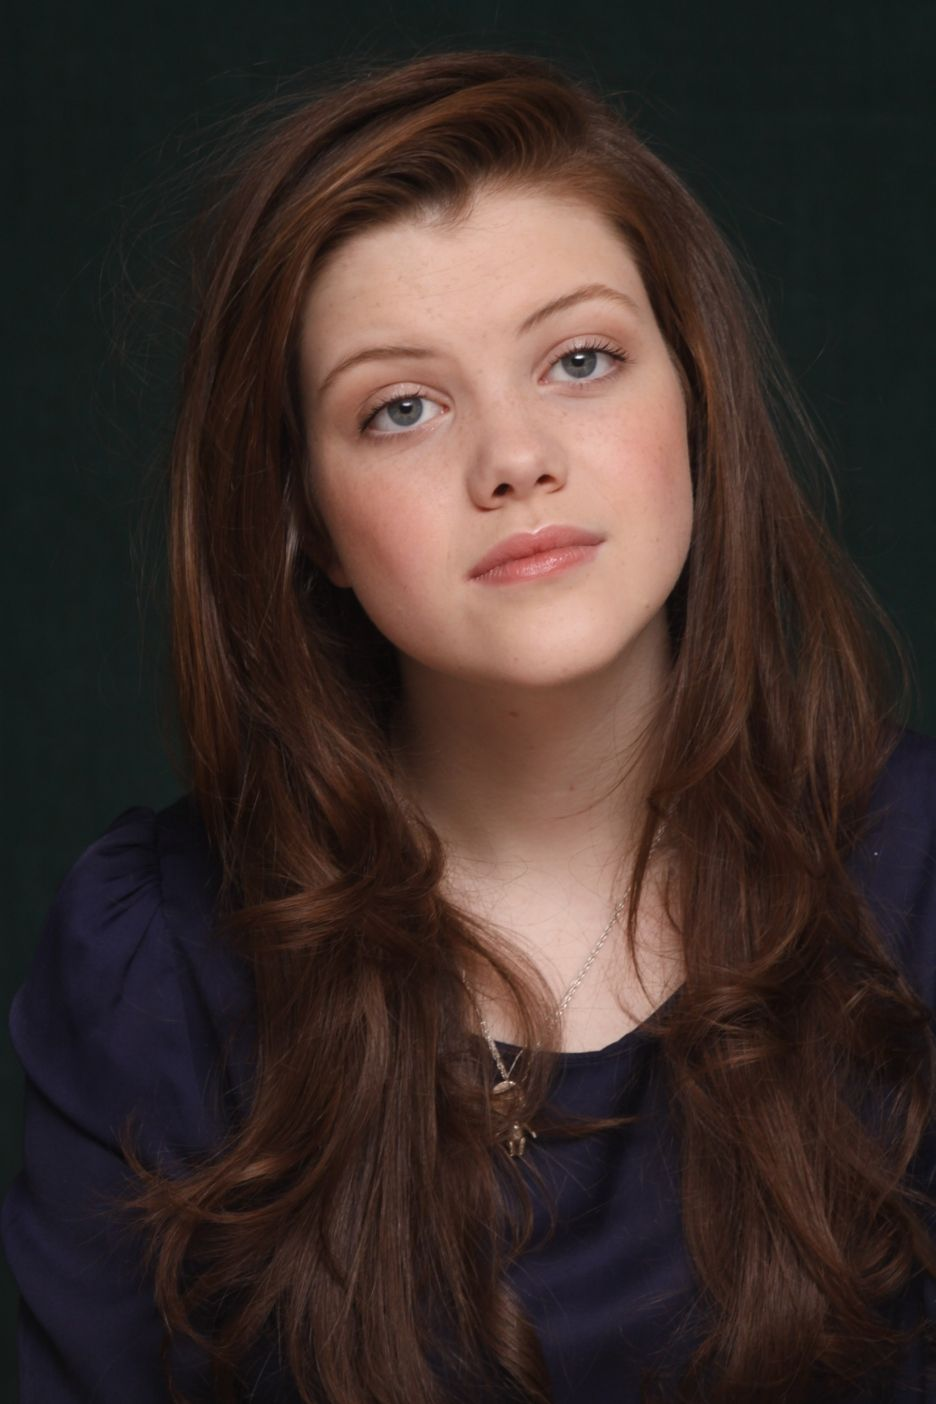 Georgie Henley (born 1995)